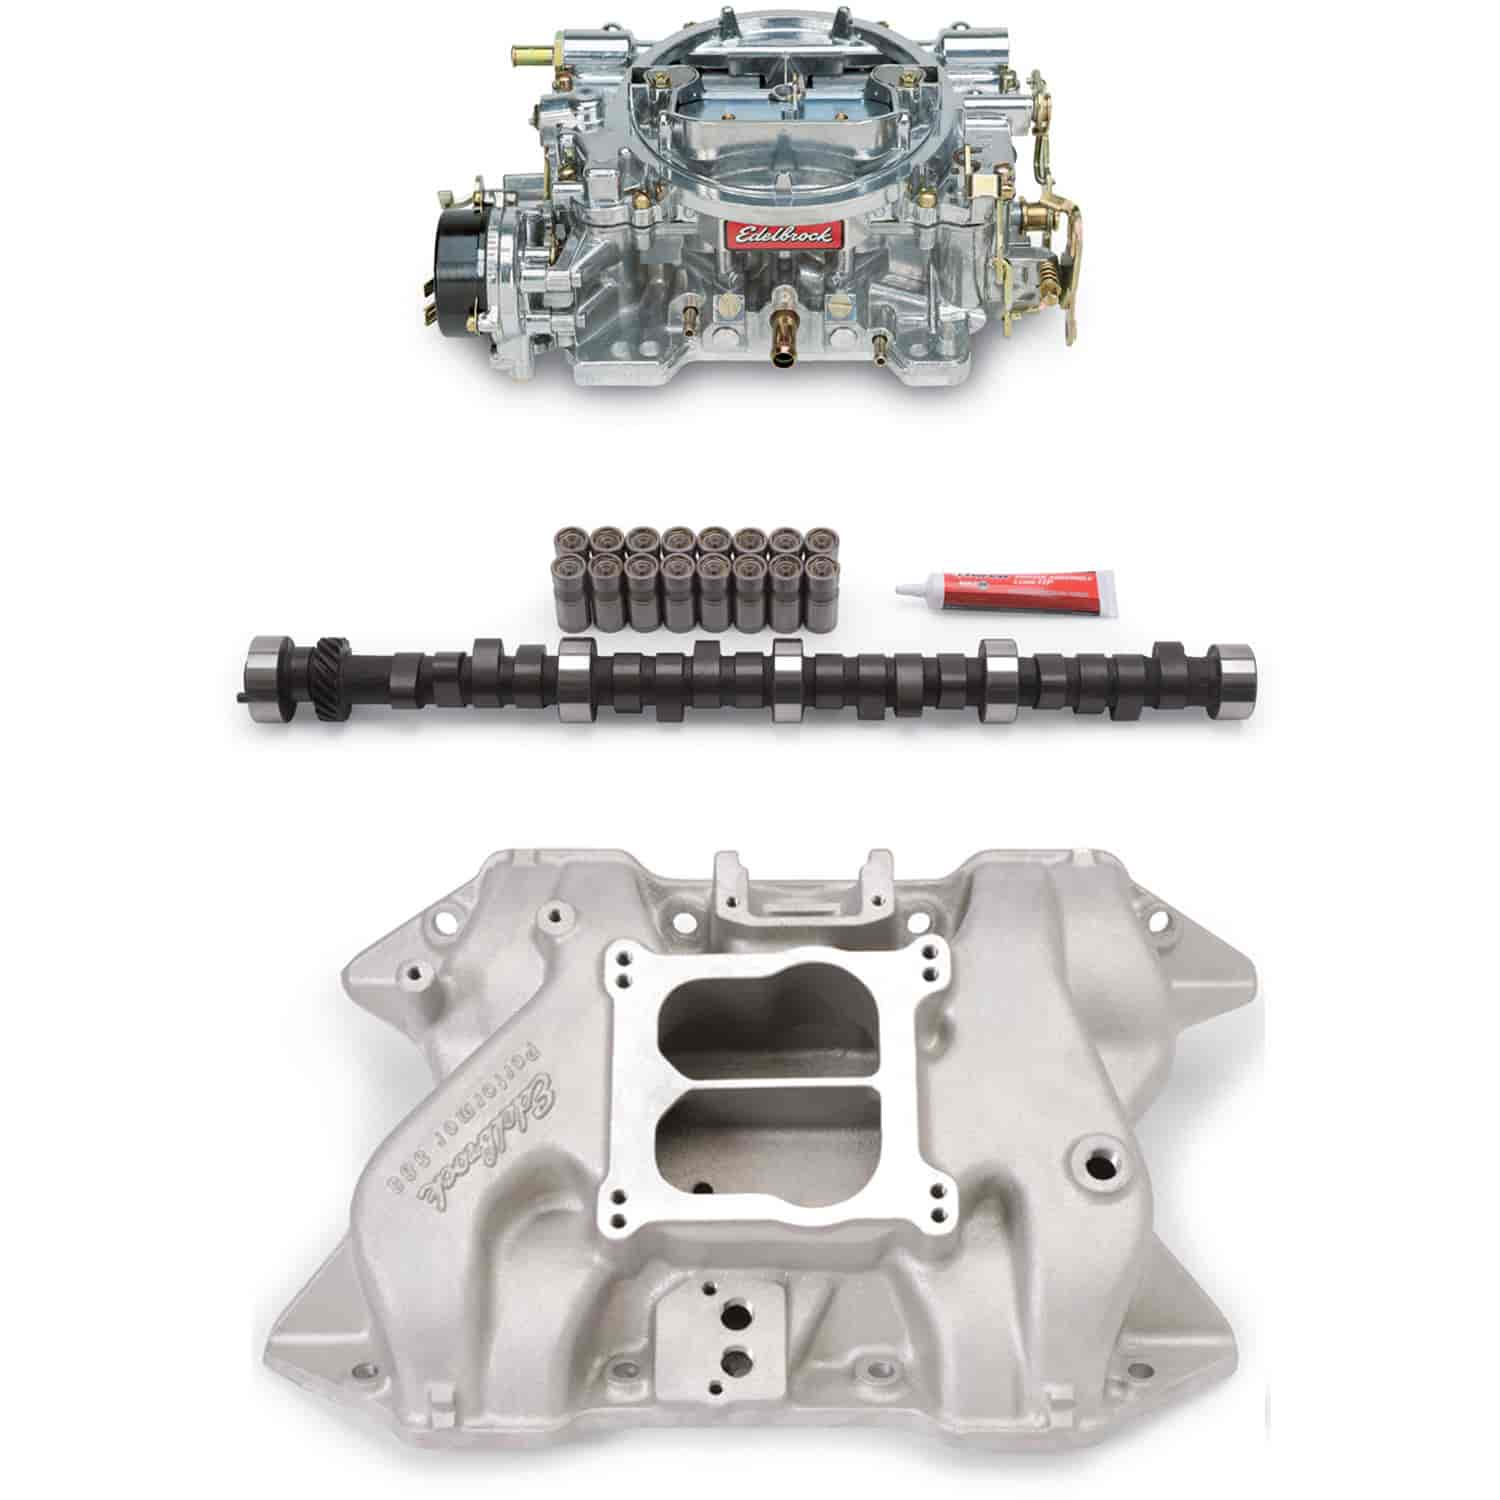 Edelbrock 2186PK - Edelbrock Performer Power Packages